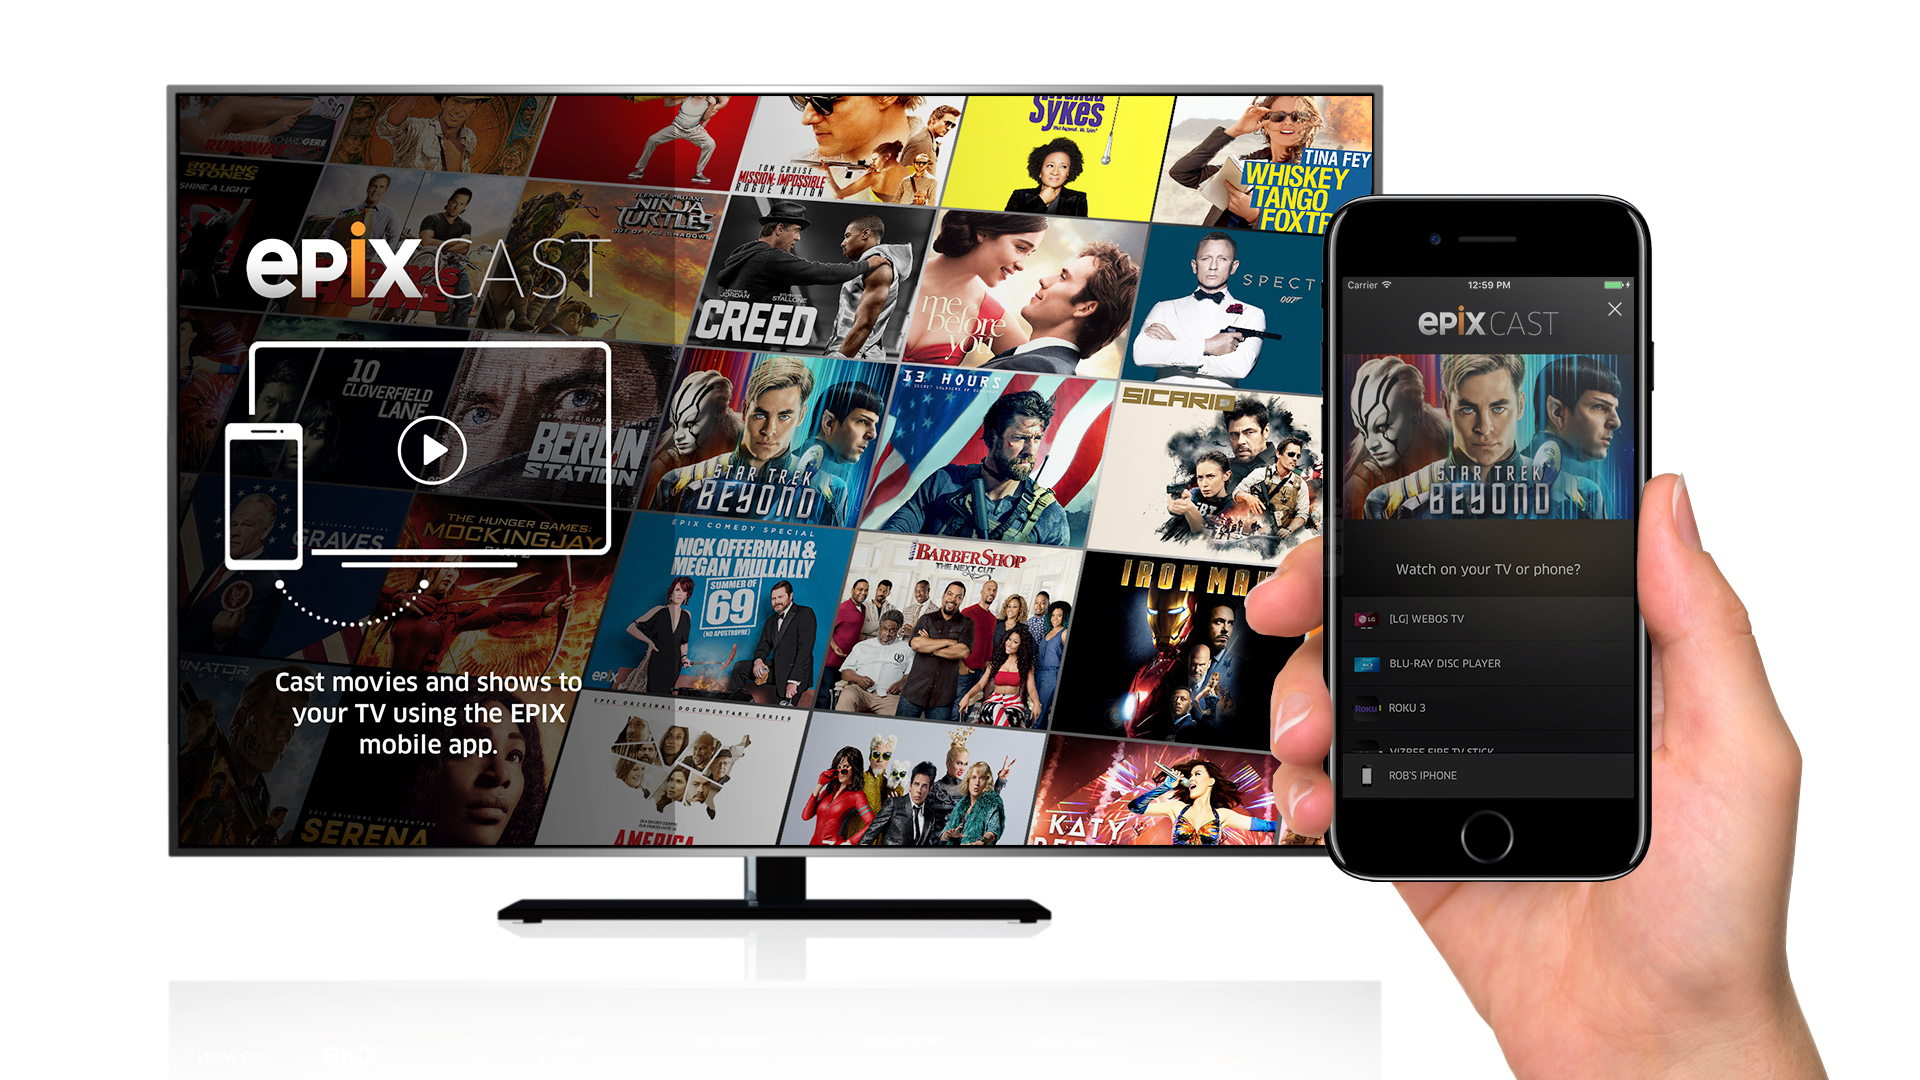 Epix Cast offers an easy way for viewers to stream movies to